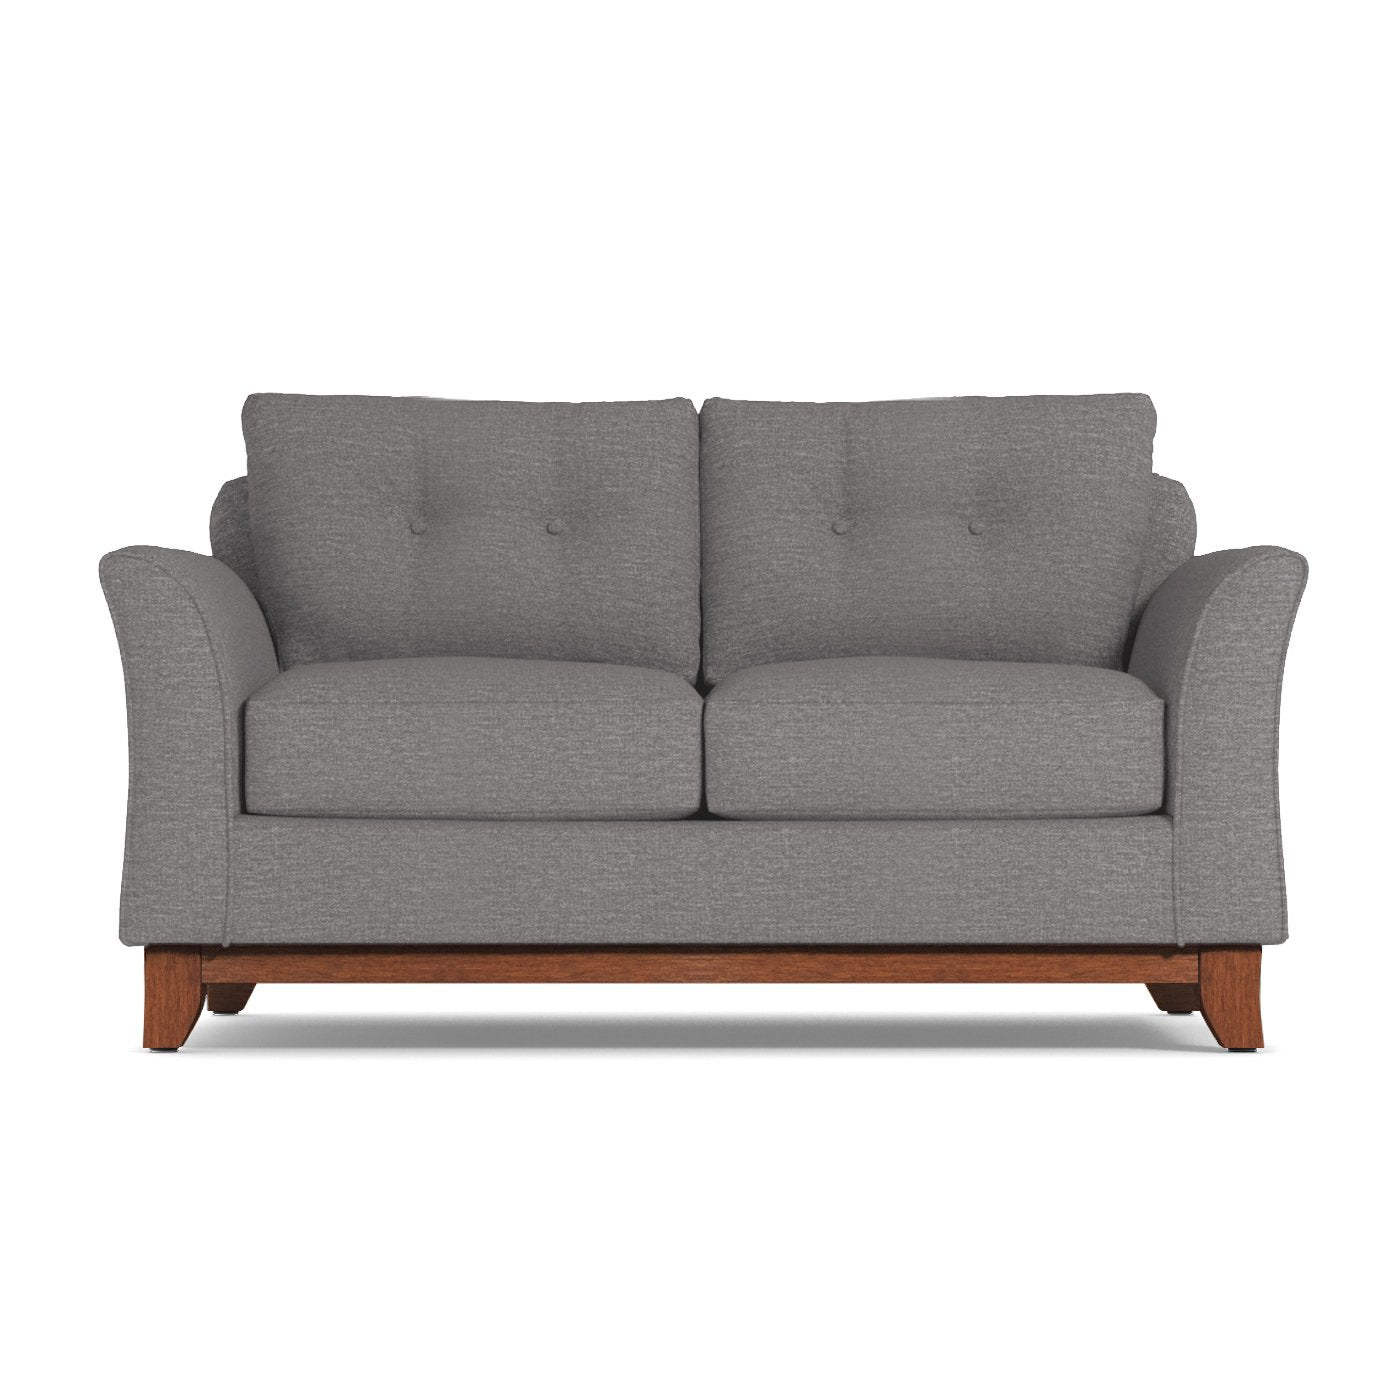 Exceptional Marco Apartment Size Sofa